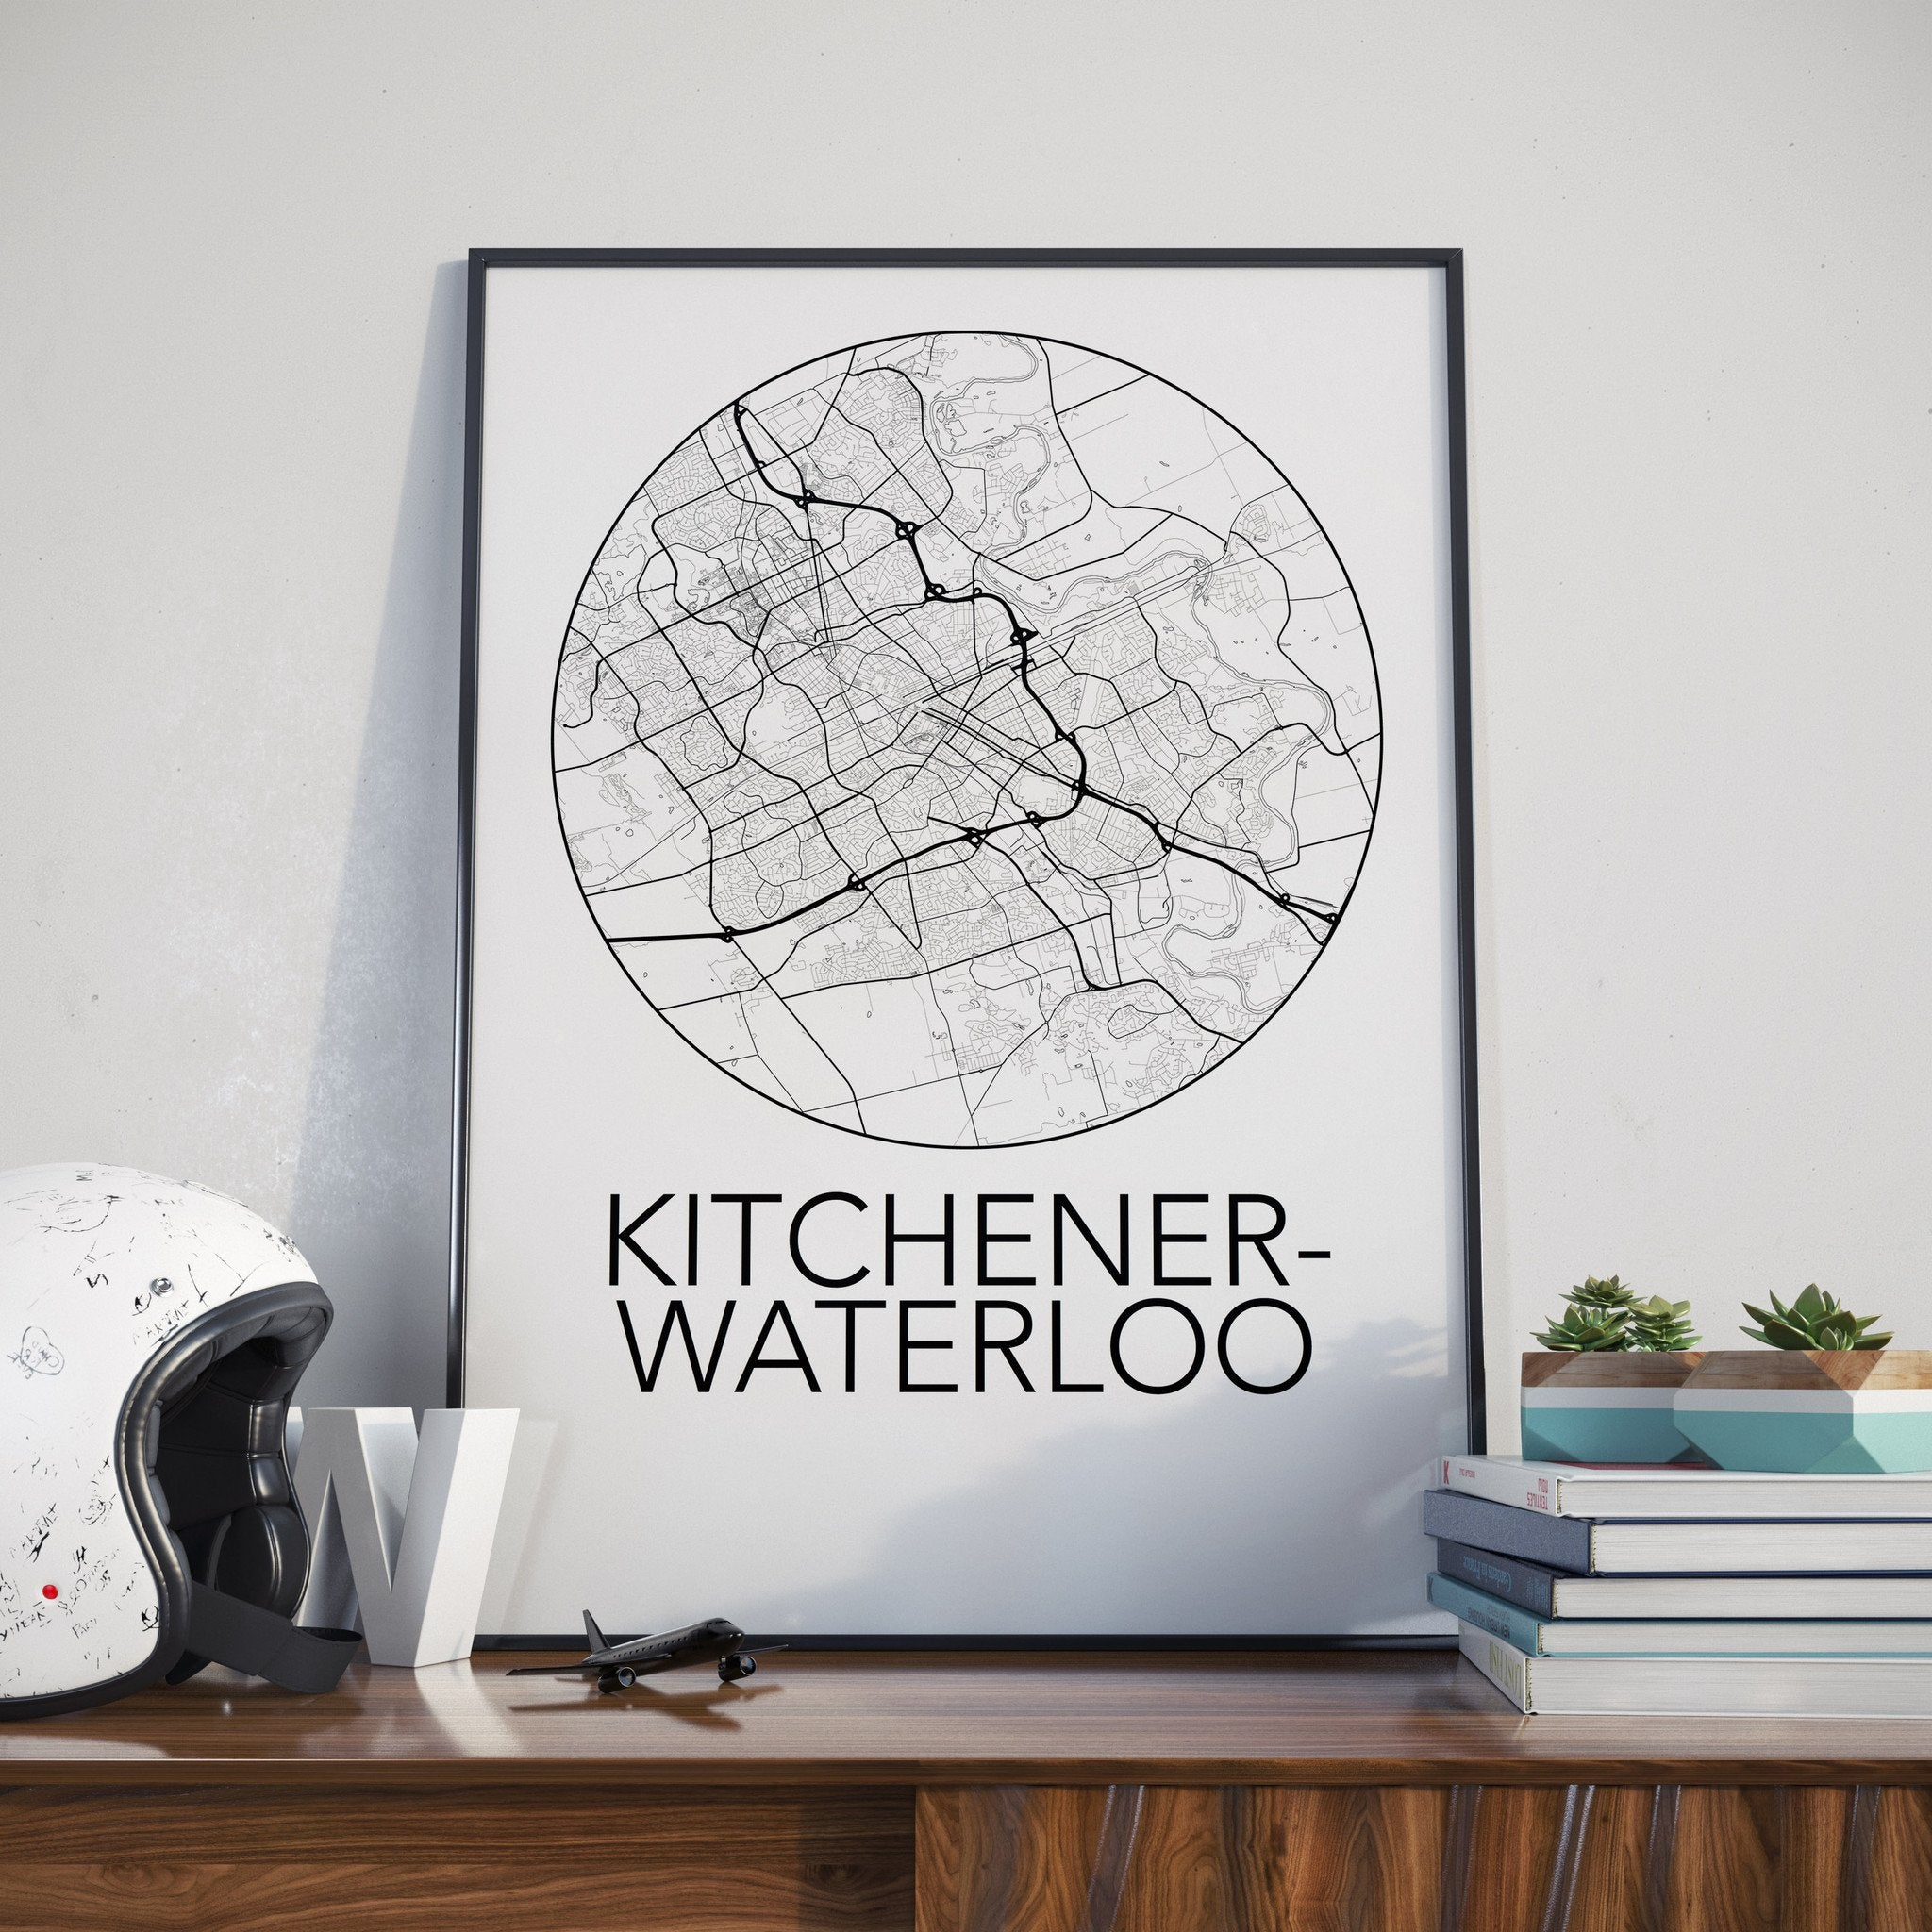 Kitchener-Waterloo, Ontario Minimalist City Map Print – The ...